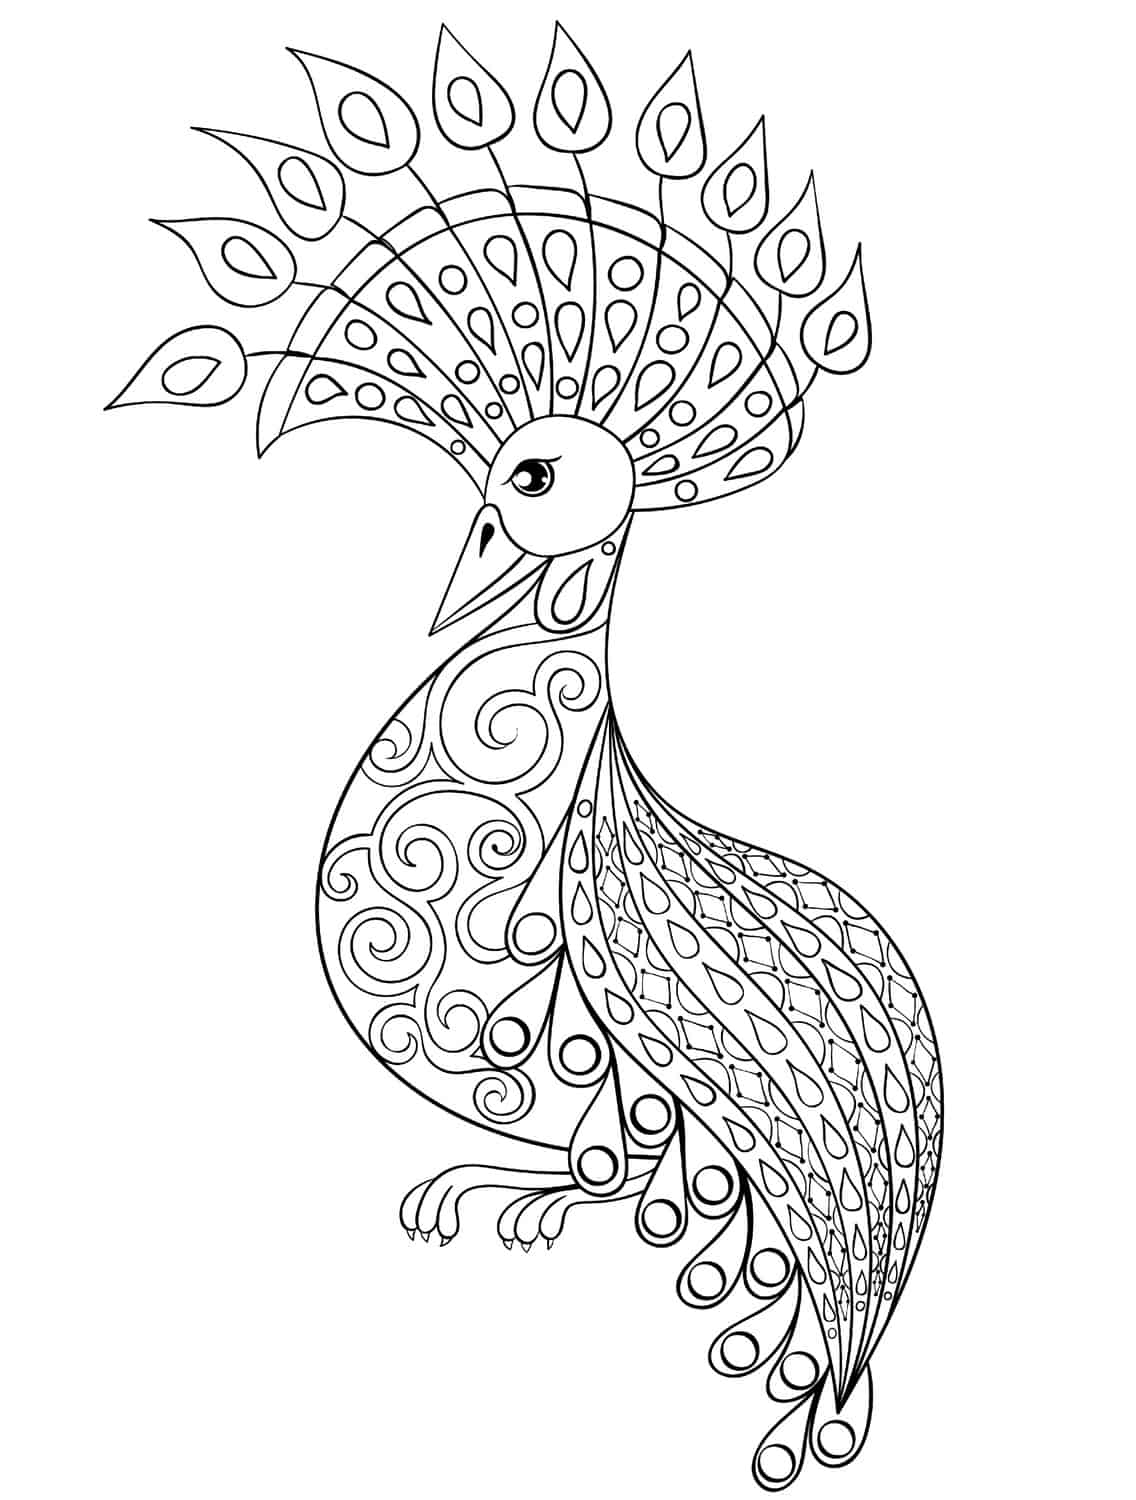 Coloring pages of peacocks - Printable Coloring Pages Peacock Download Your Jpeg Here Download